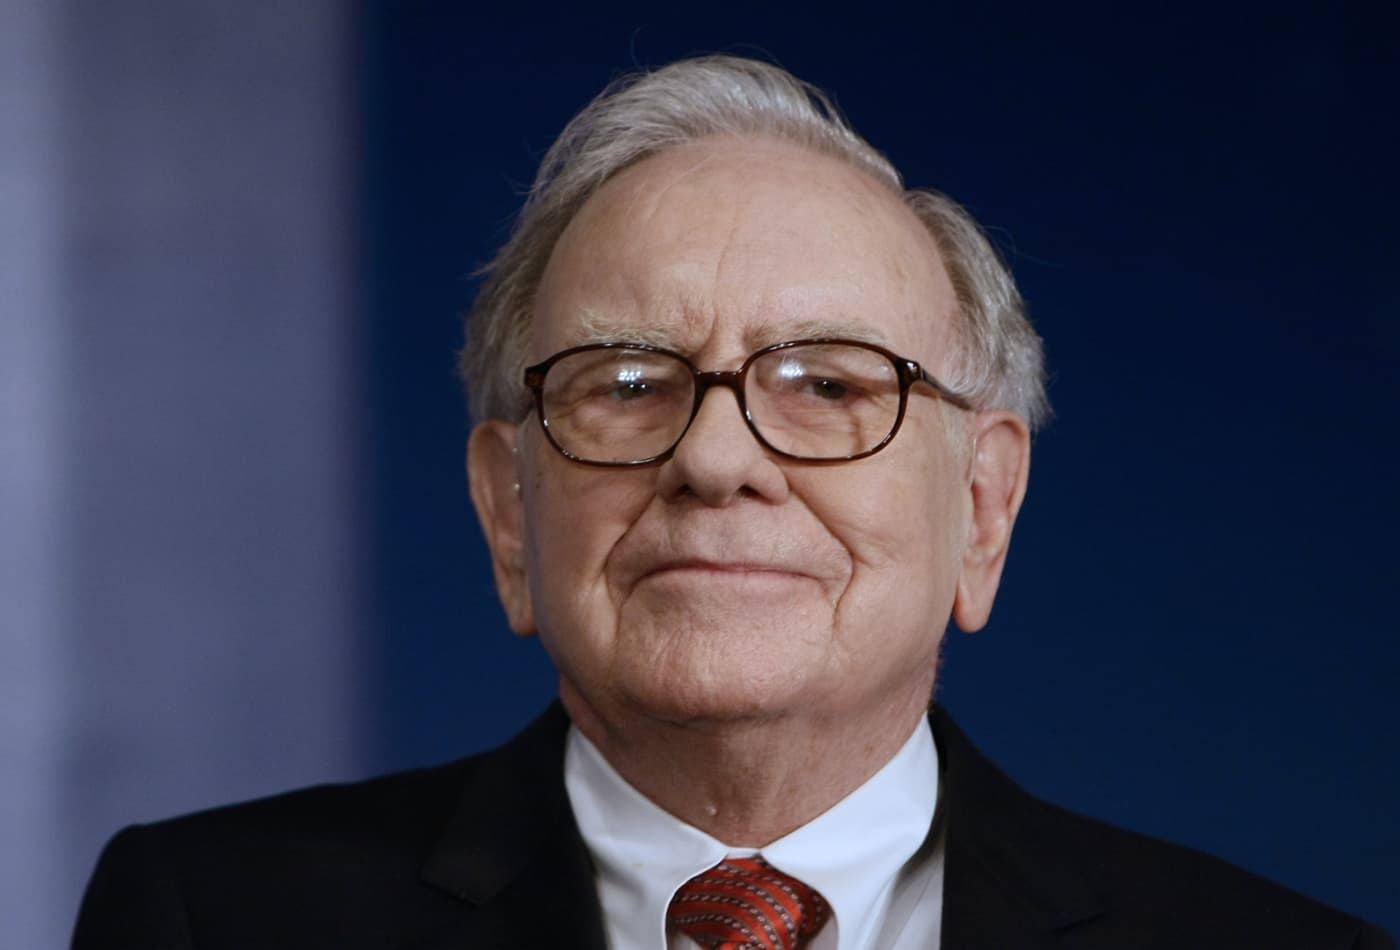 Read Warren Buffett's annual letter to Berkshire Hathaway shareholders